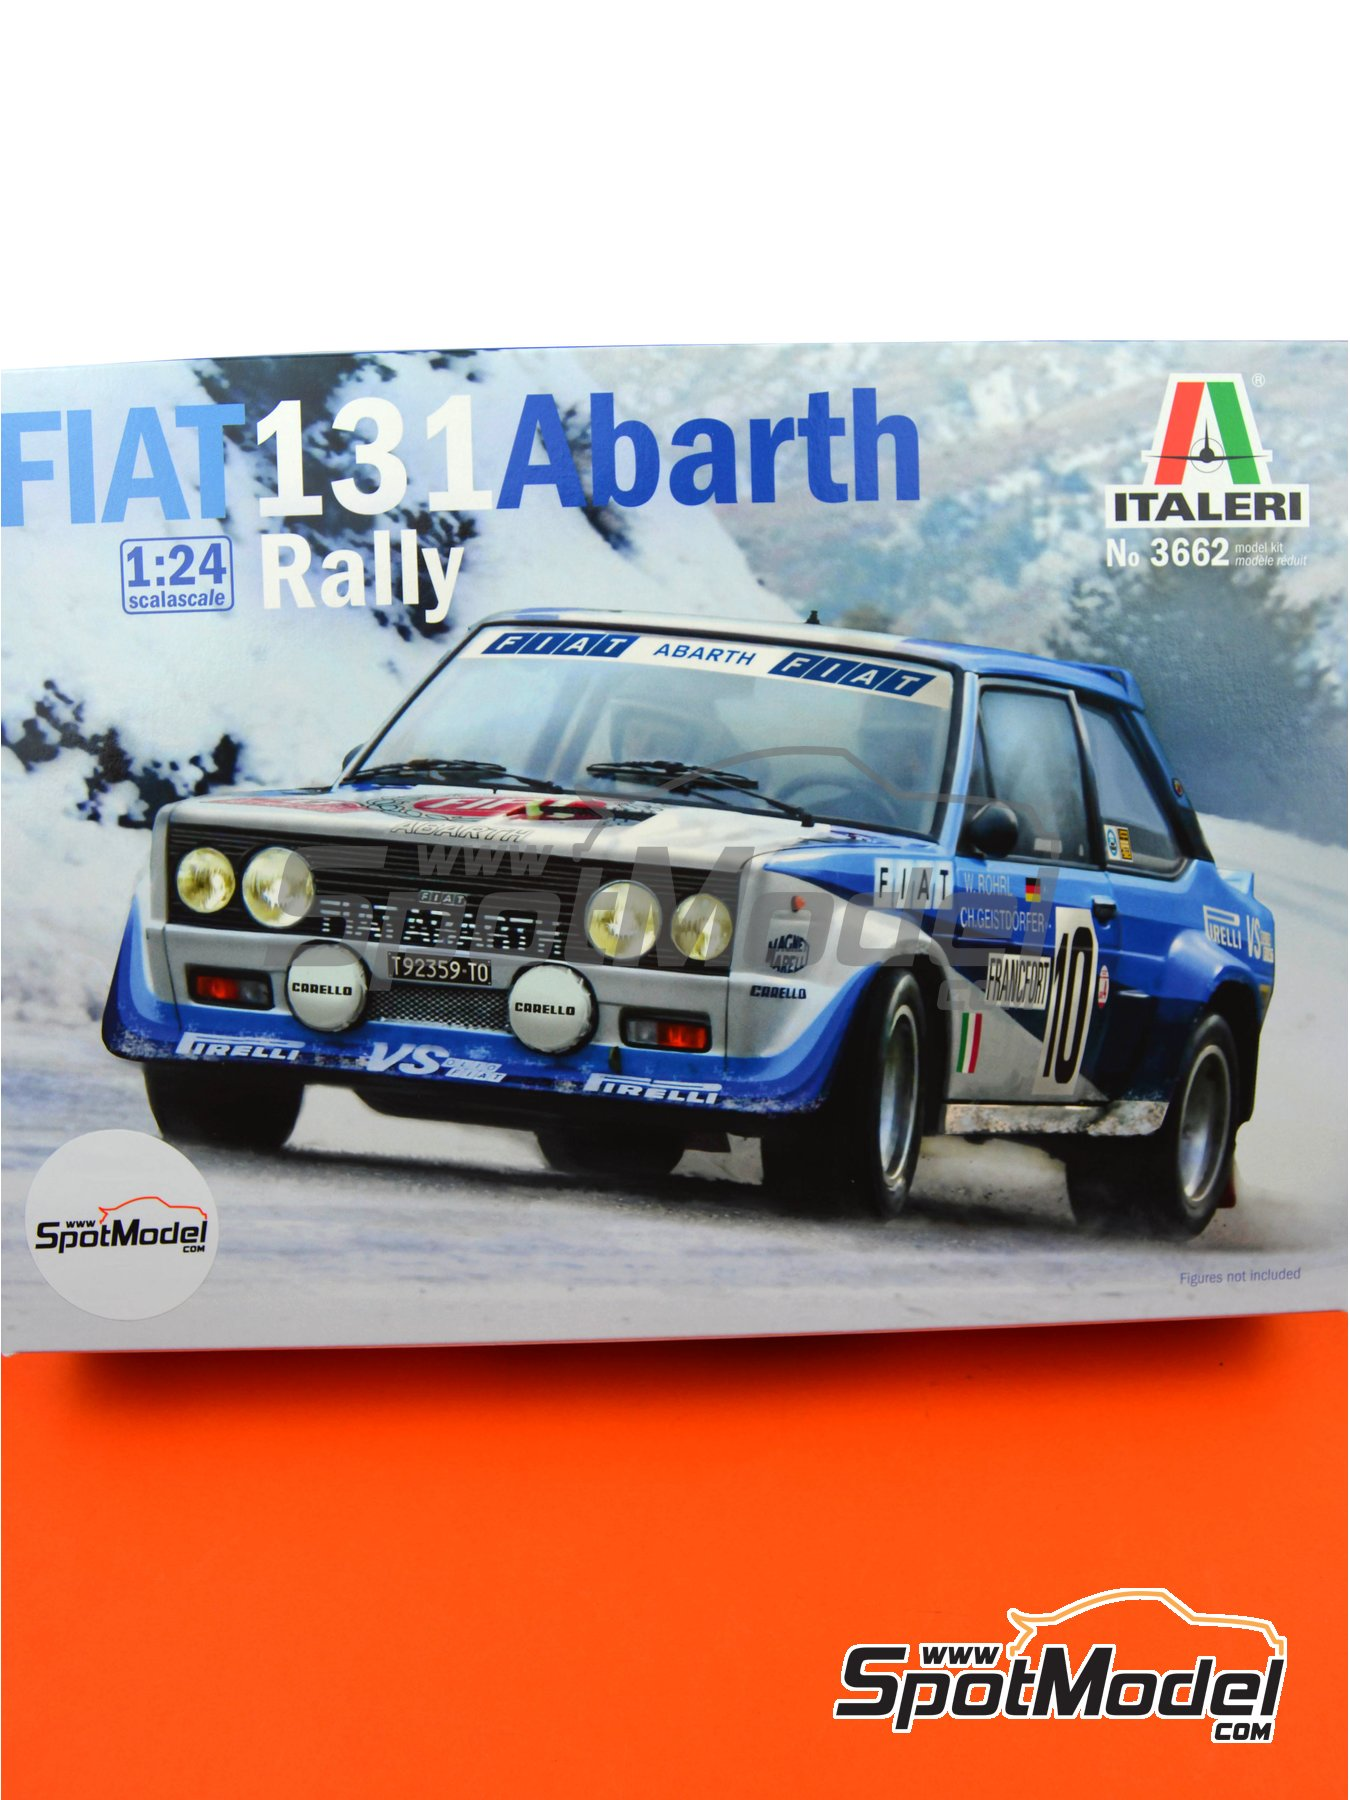 Fiat 131 Abarth | Model car kit in 1/24 scale manufactured by Italeri (ref. 3662, also ITA3662 and 3662S) image